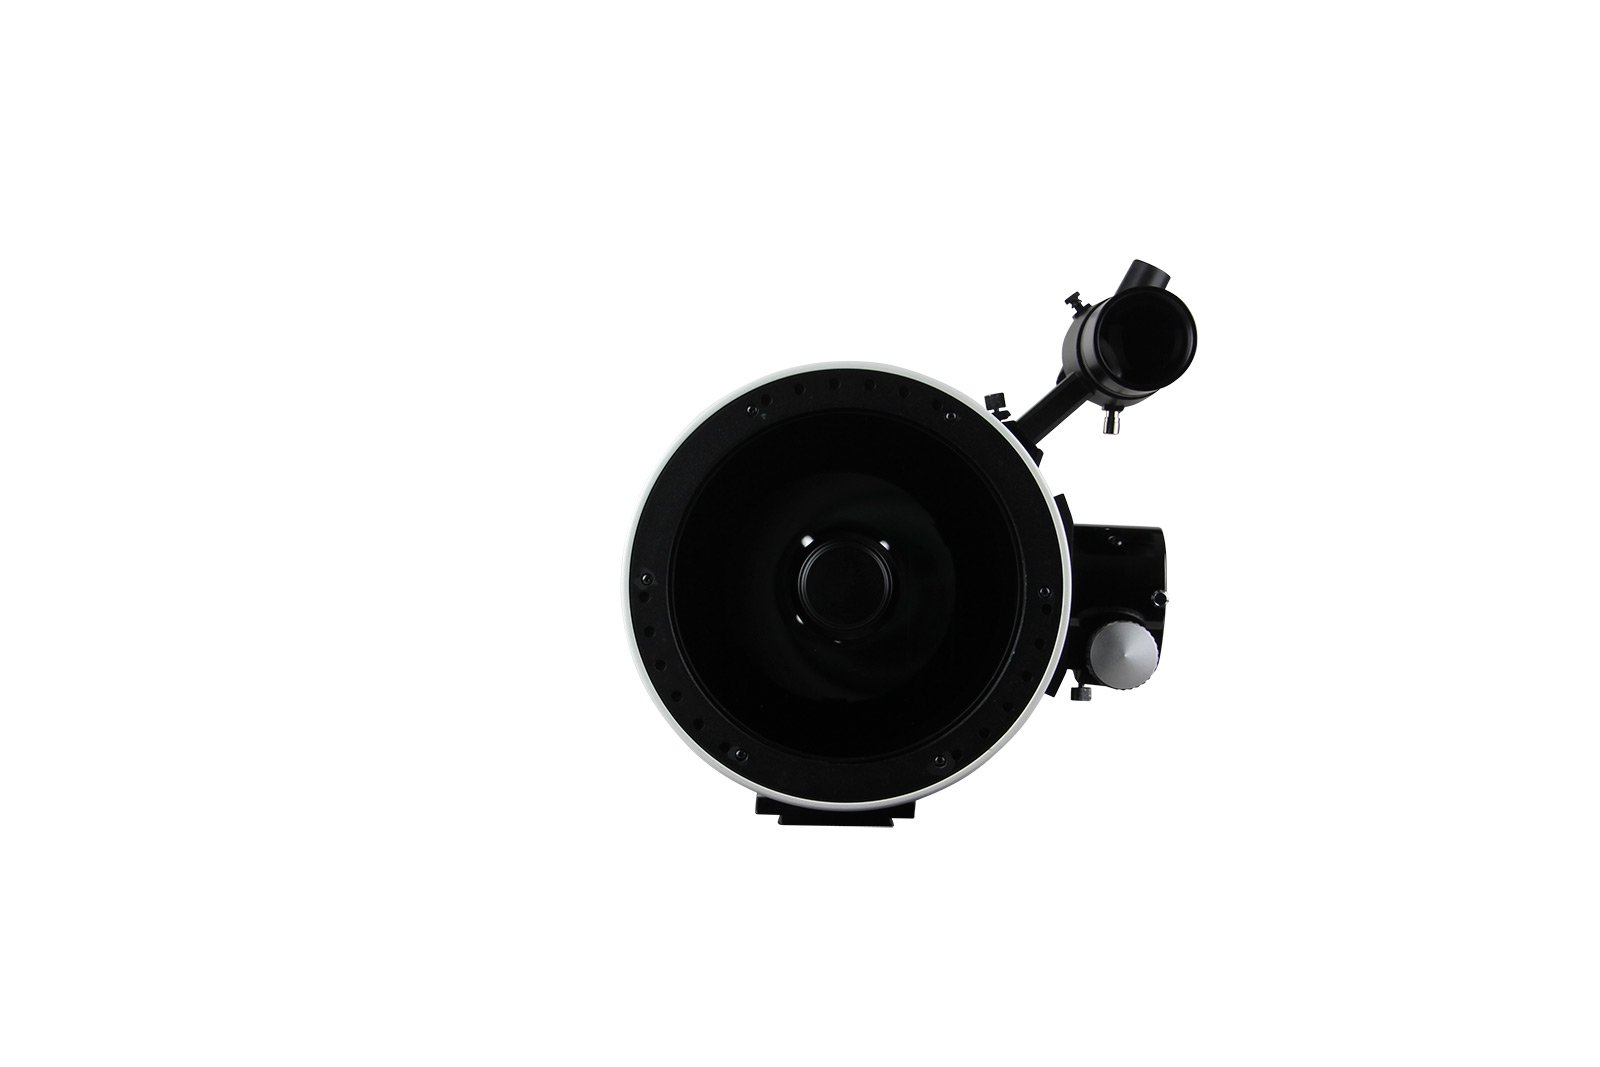 SkyWatcher S11550 Maksutov-Newtonian 190mm (Black) by Sky Watcher